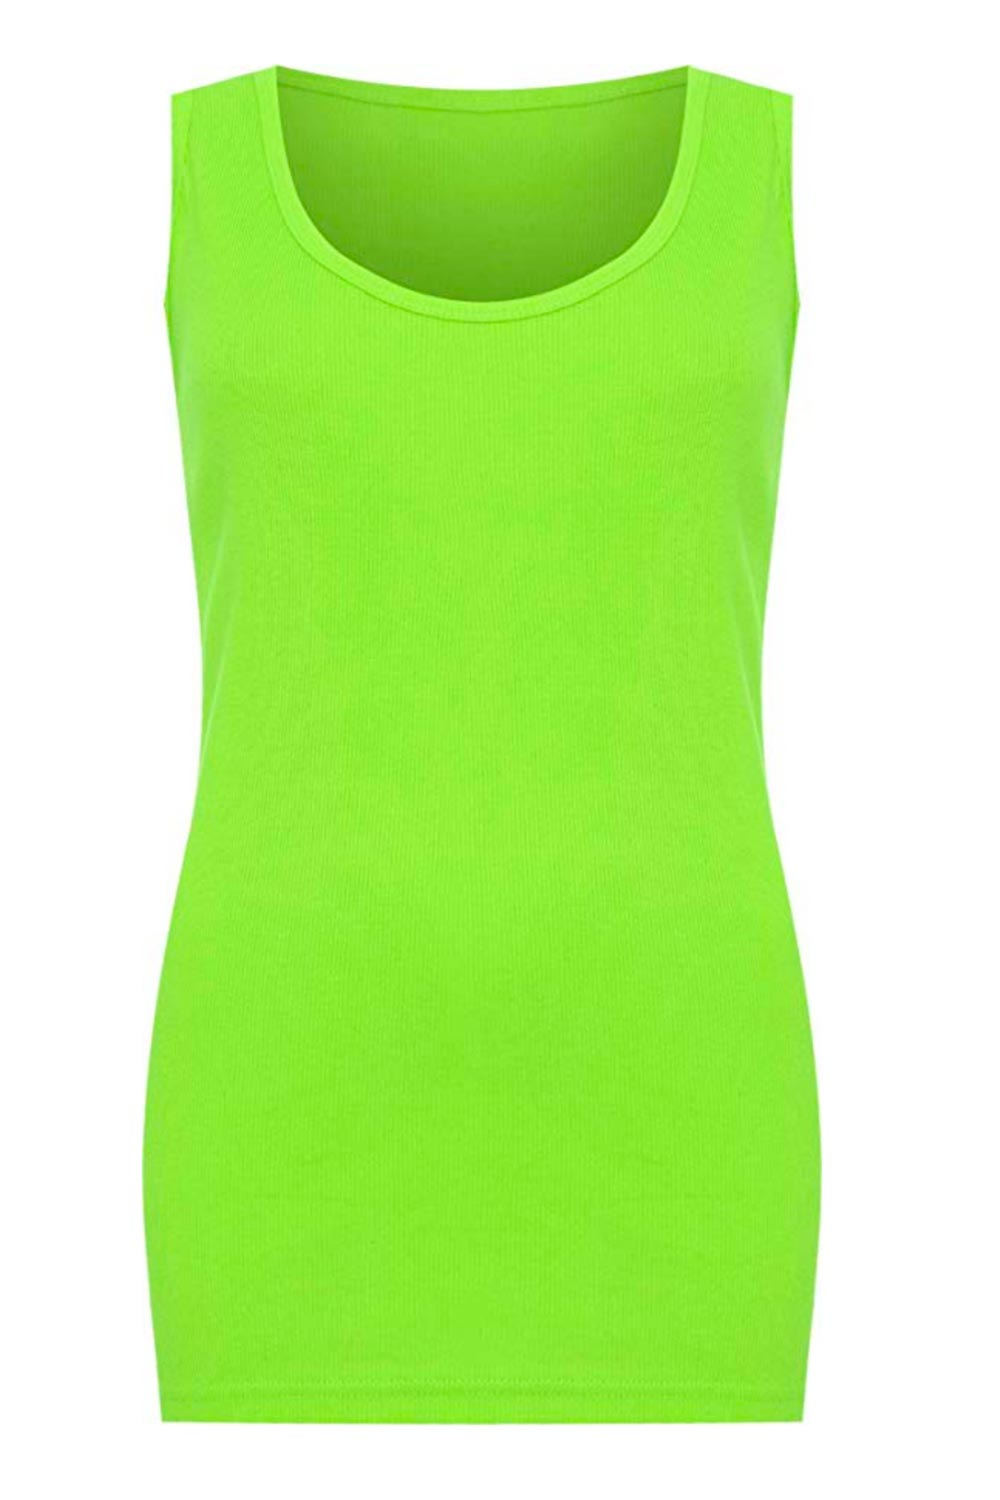 Ribbed Vest Top - NEON GREEN